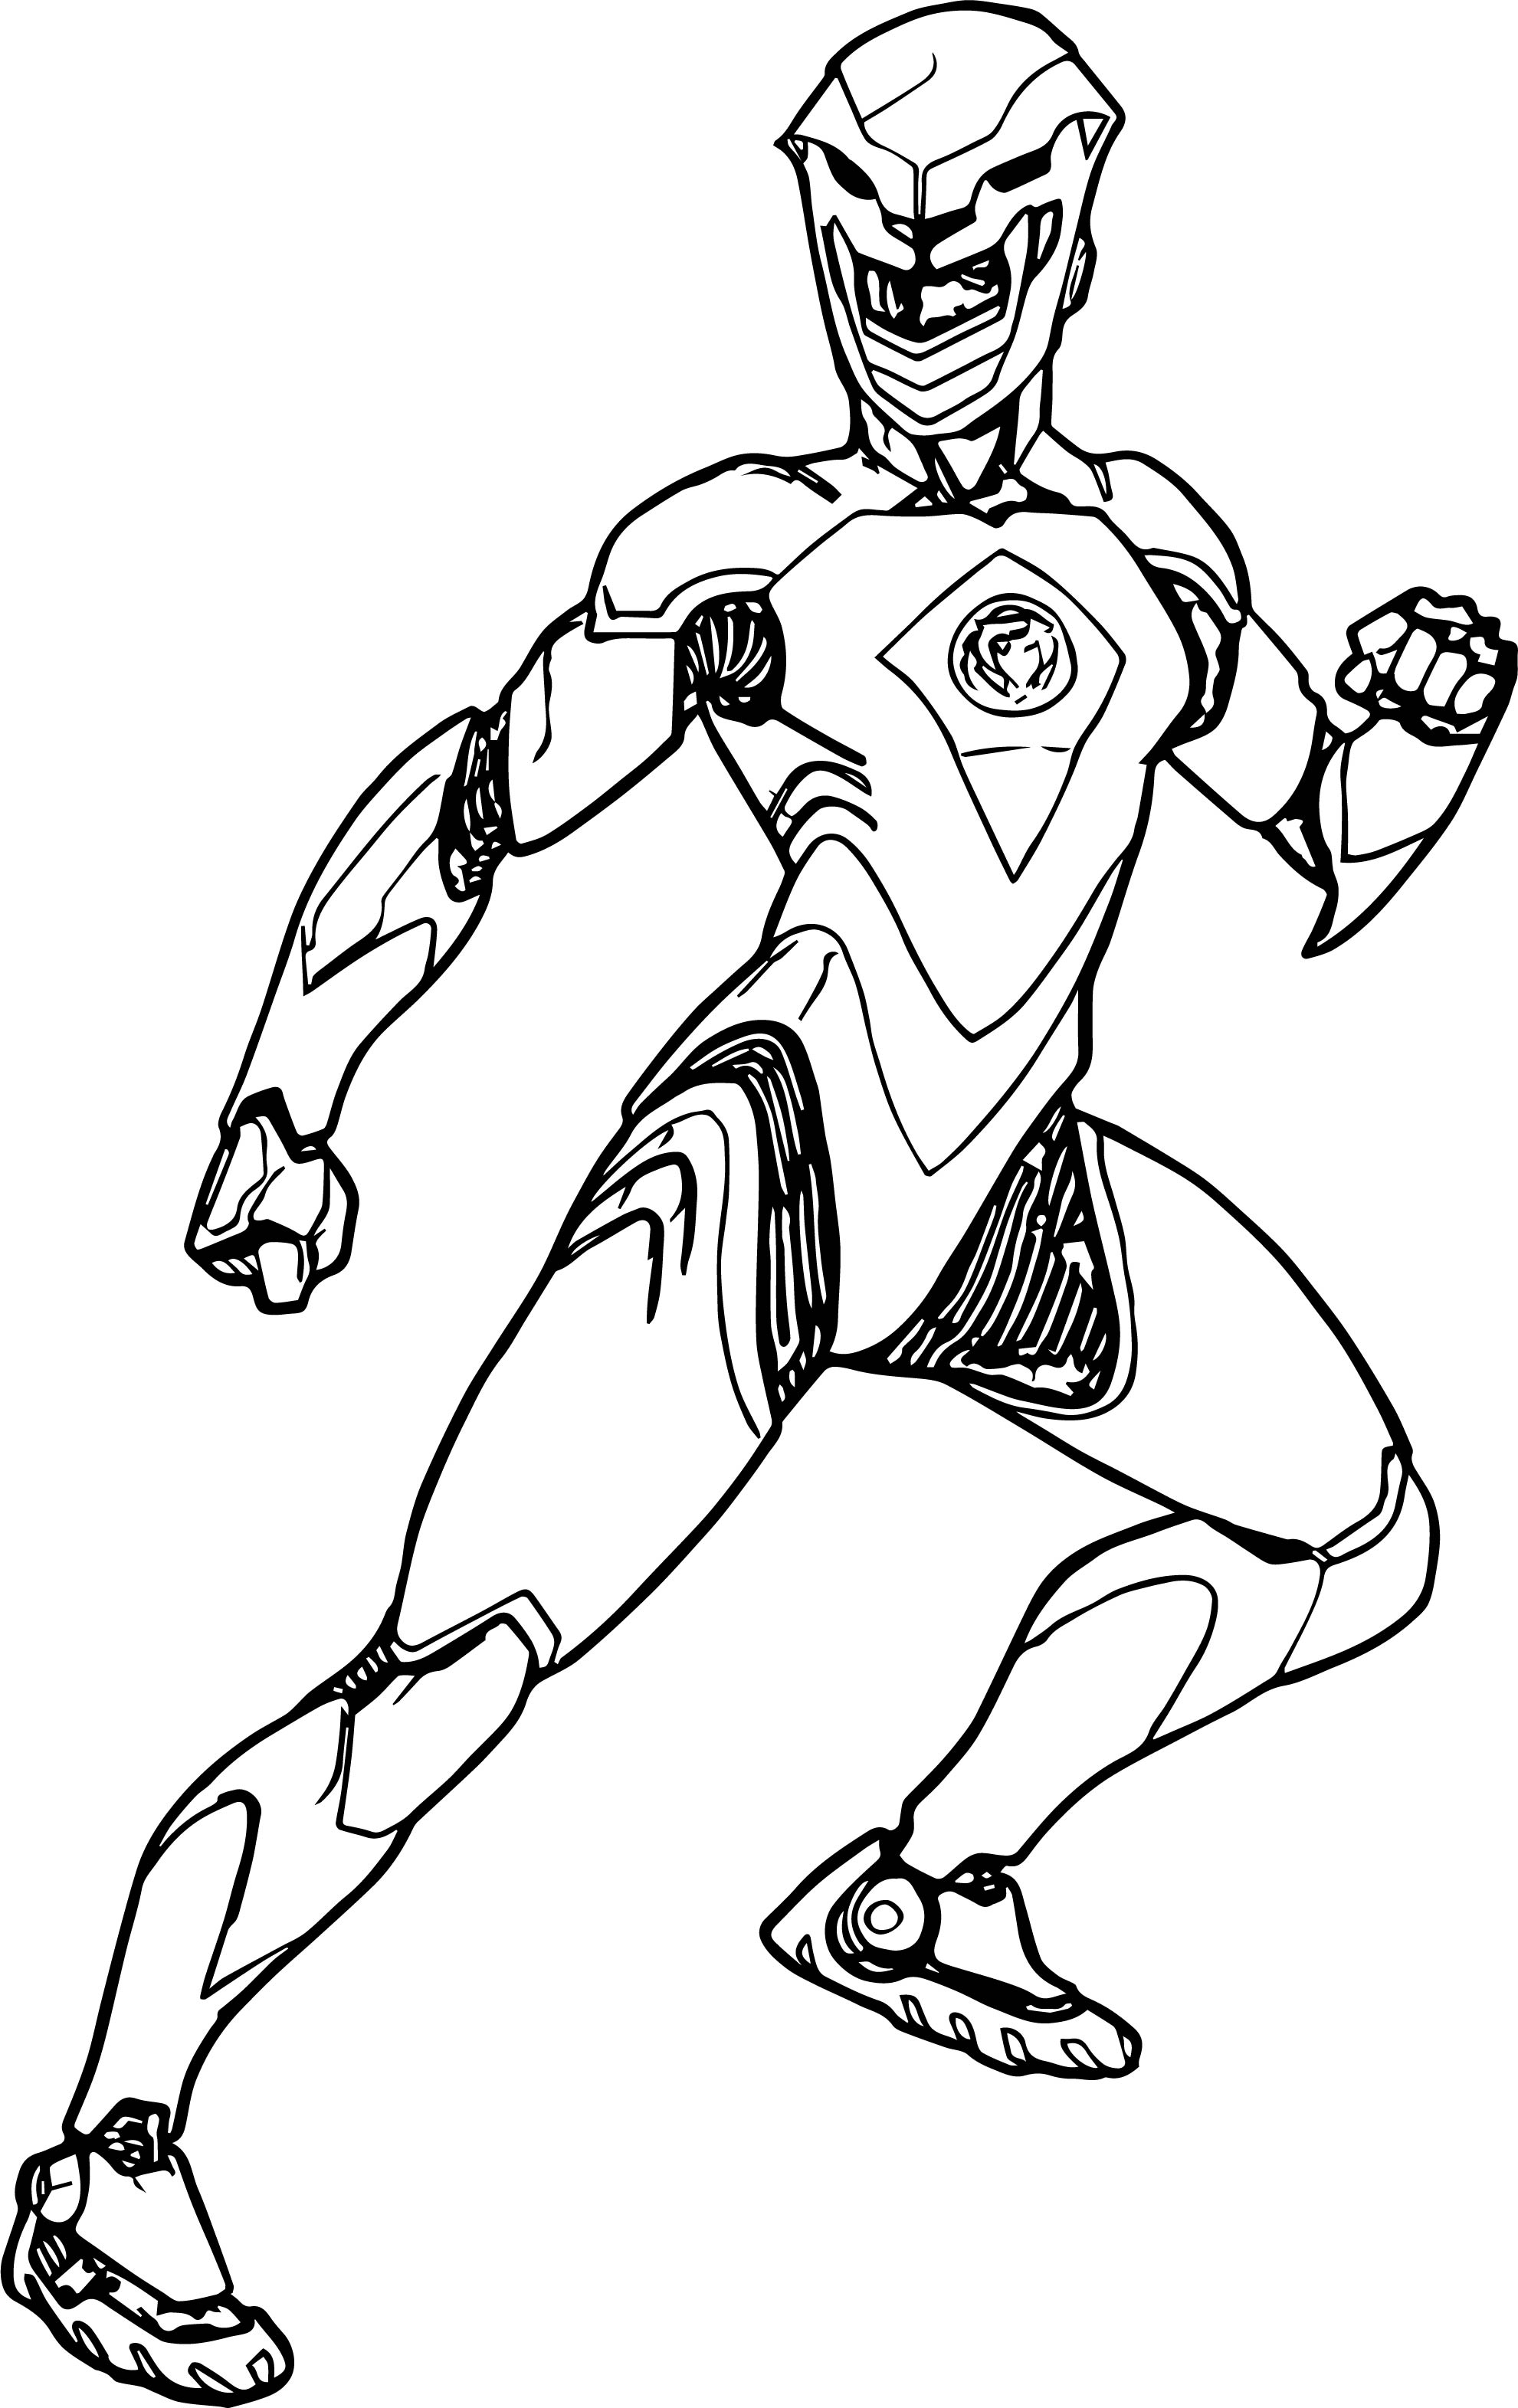 power ranger coloring pages mighty morphin power rangers red ranger coloring page pages coloring power ranger